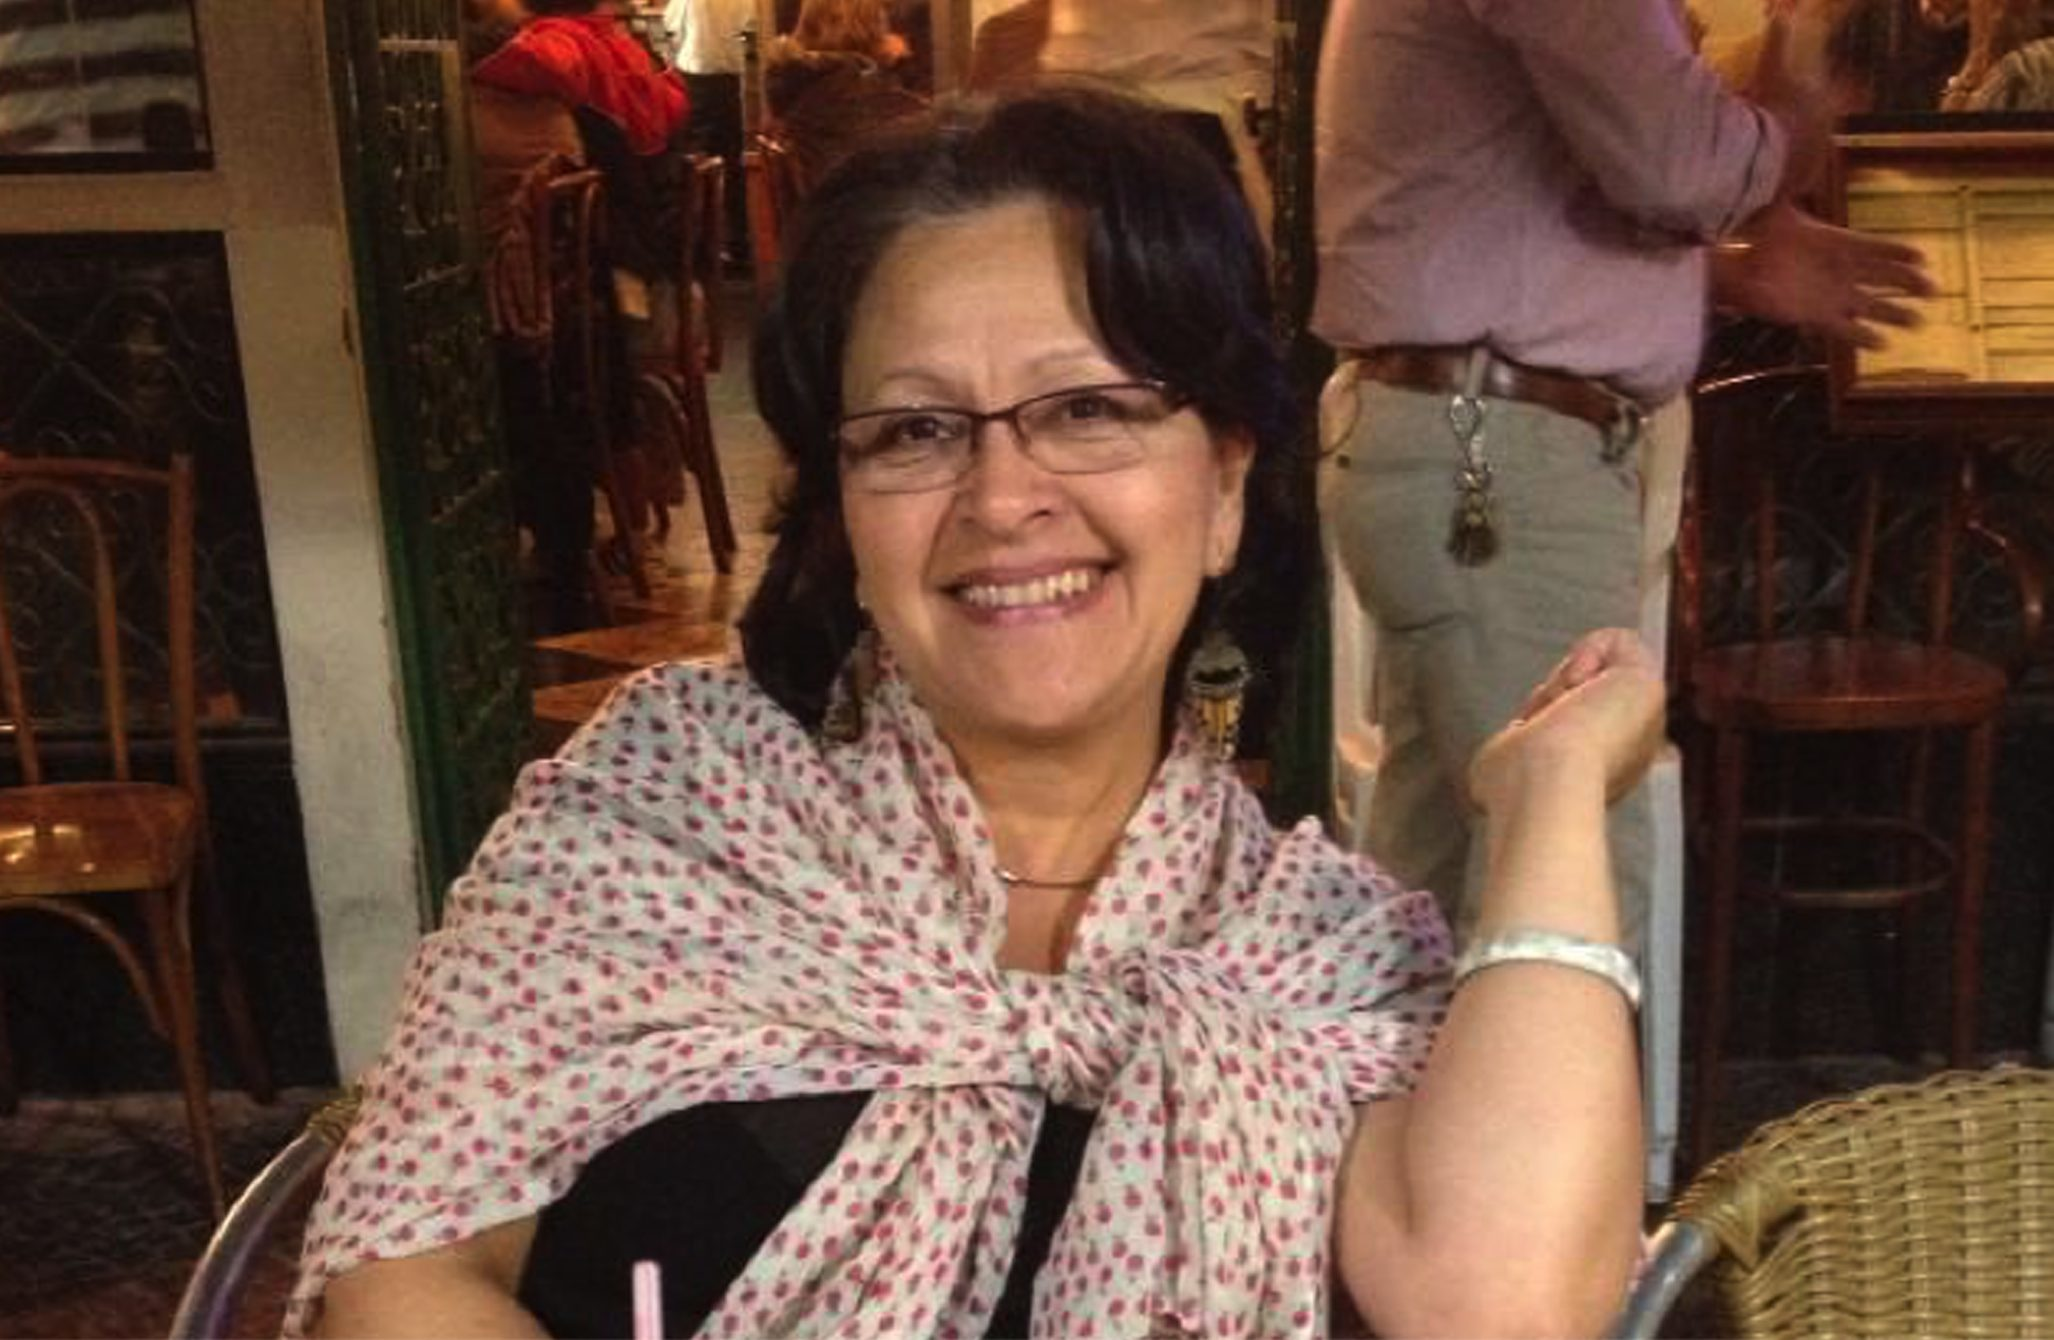 Nayela Torrealba needs to have brain surgery after doctors discovered a tumour.